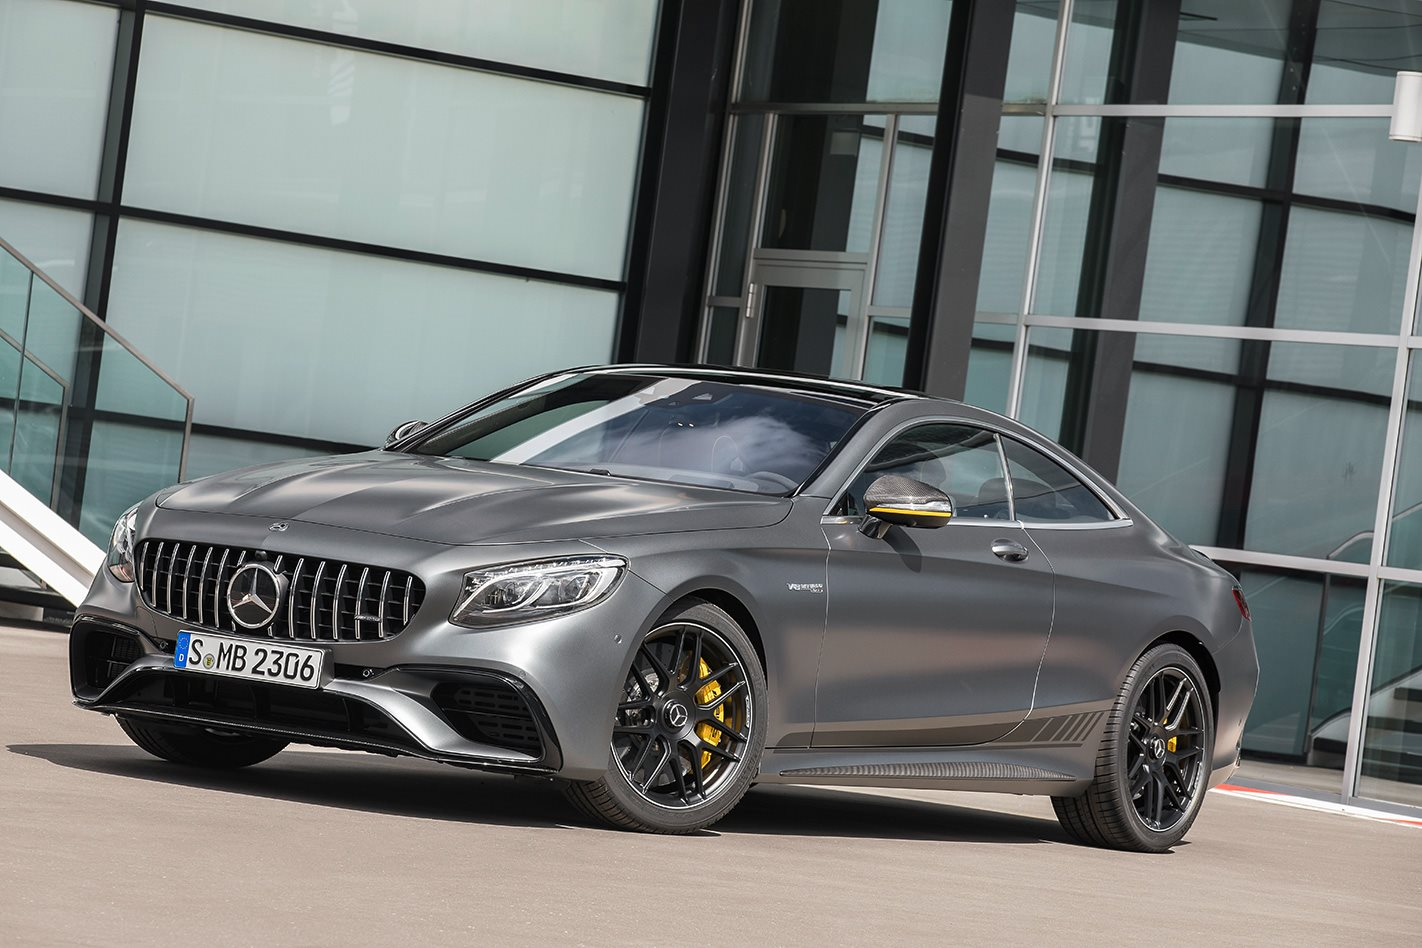 Mercedes-AMG S 63 Coupé Yellow Night Edition front.jpg